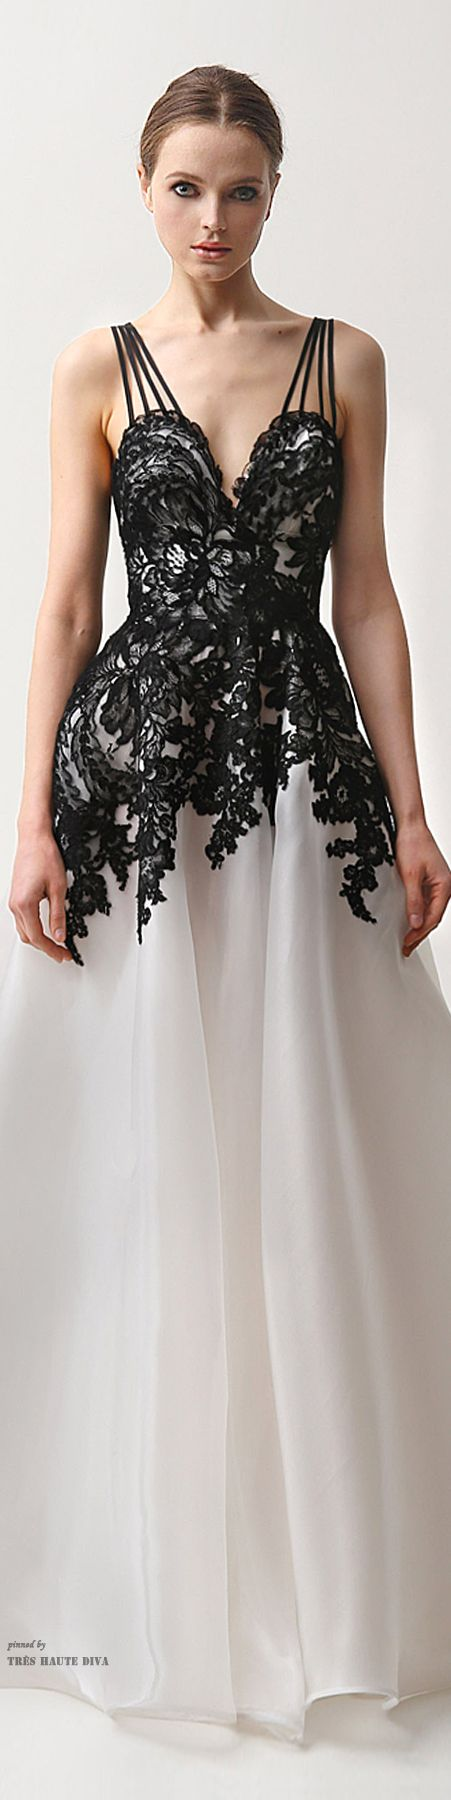 Lace dress in black august 2019  best Wedding images by Janie Rafoth on Pinterest  Fashion